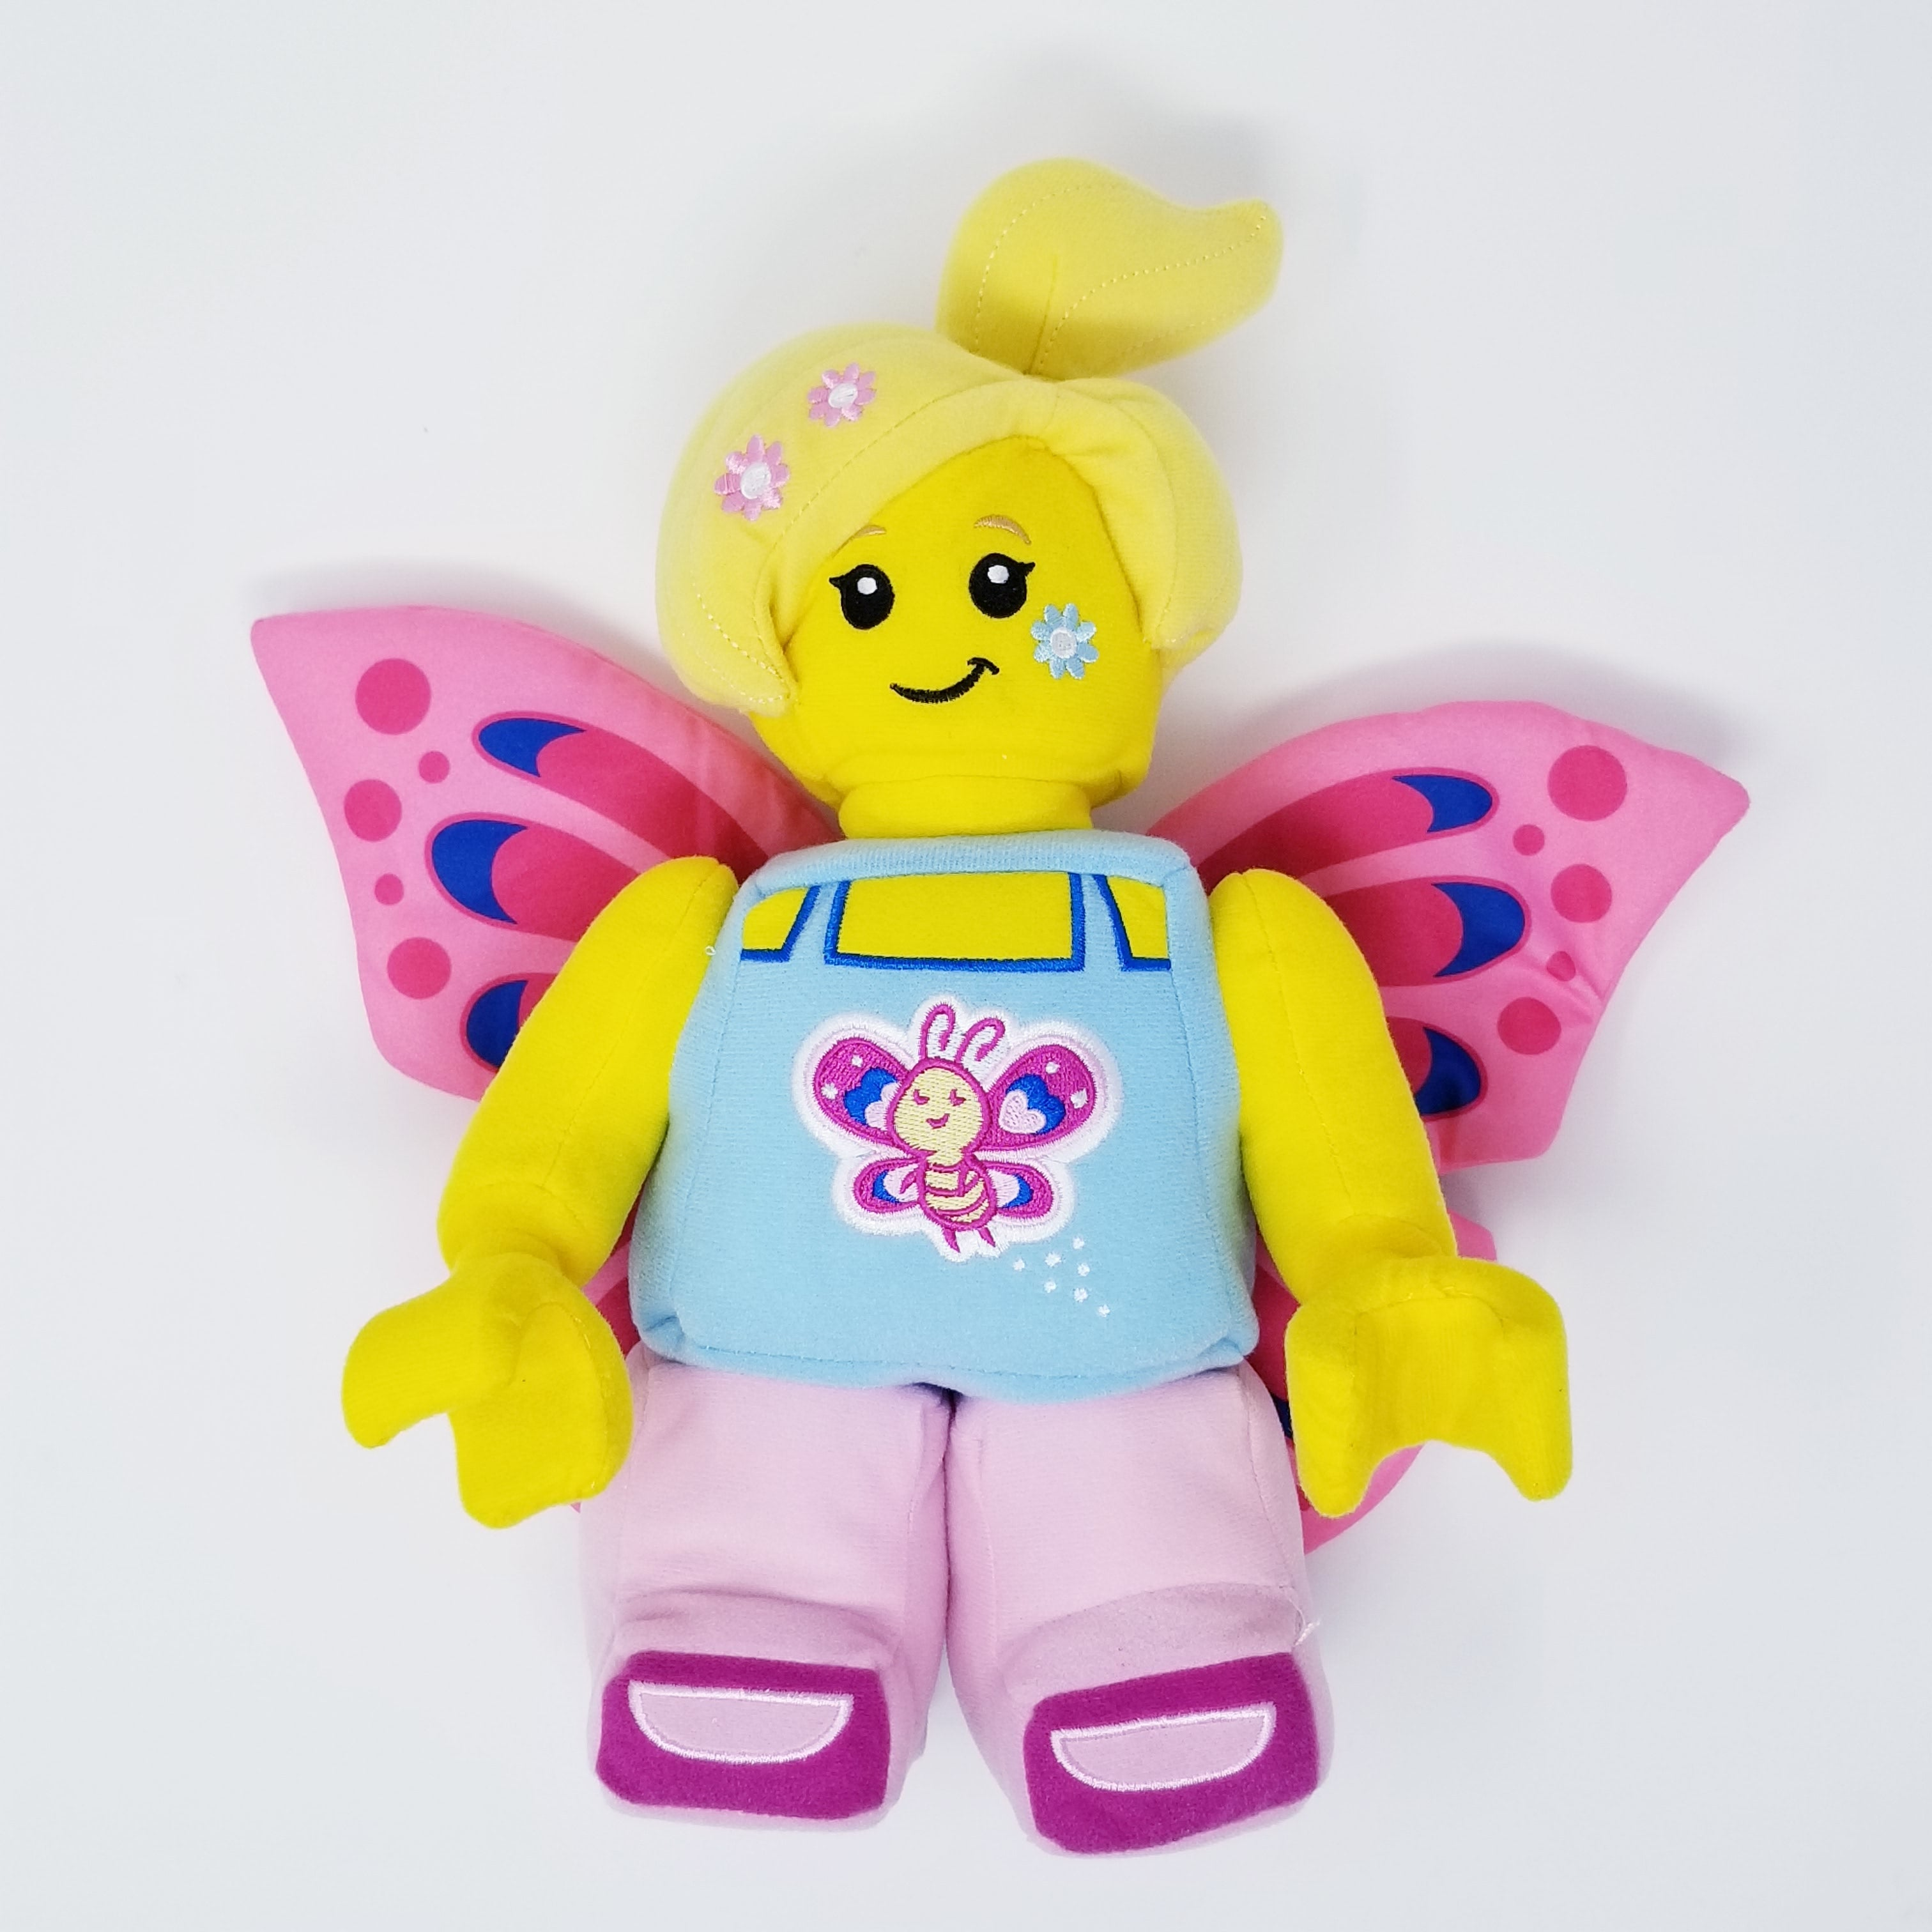 Lego Minifigure butterfly girl with heart on torso